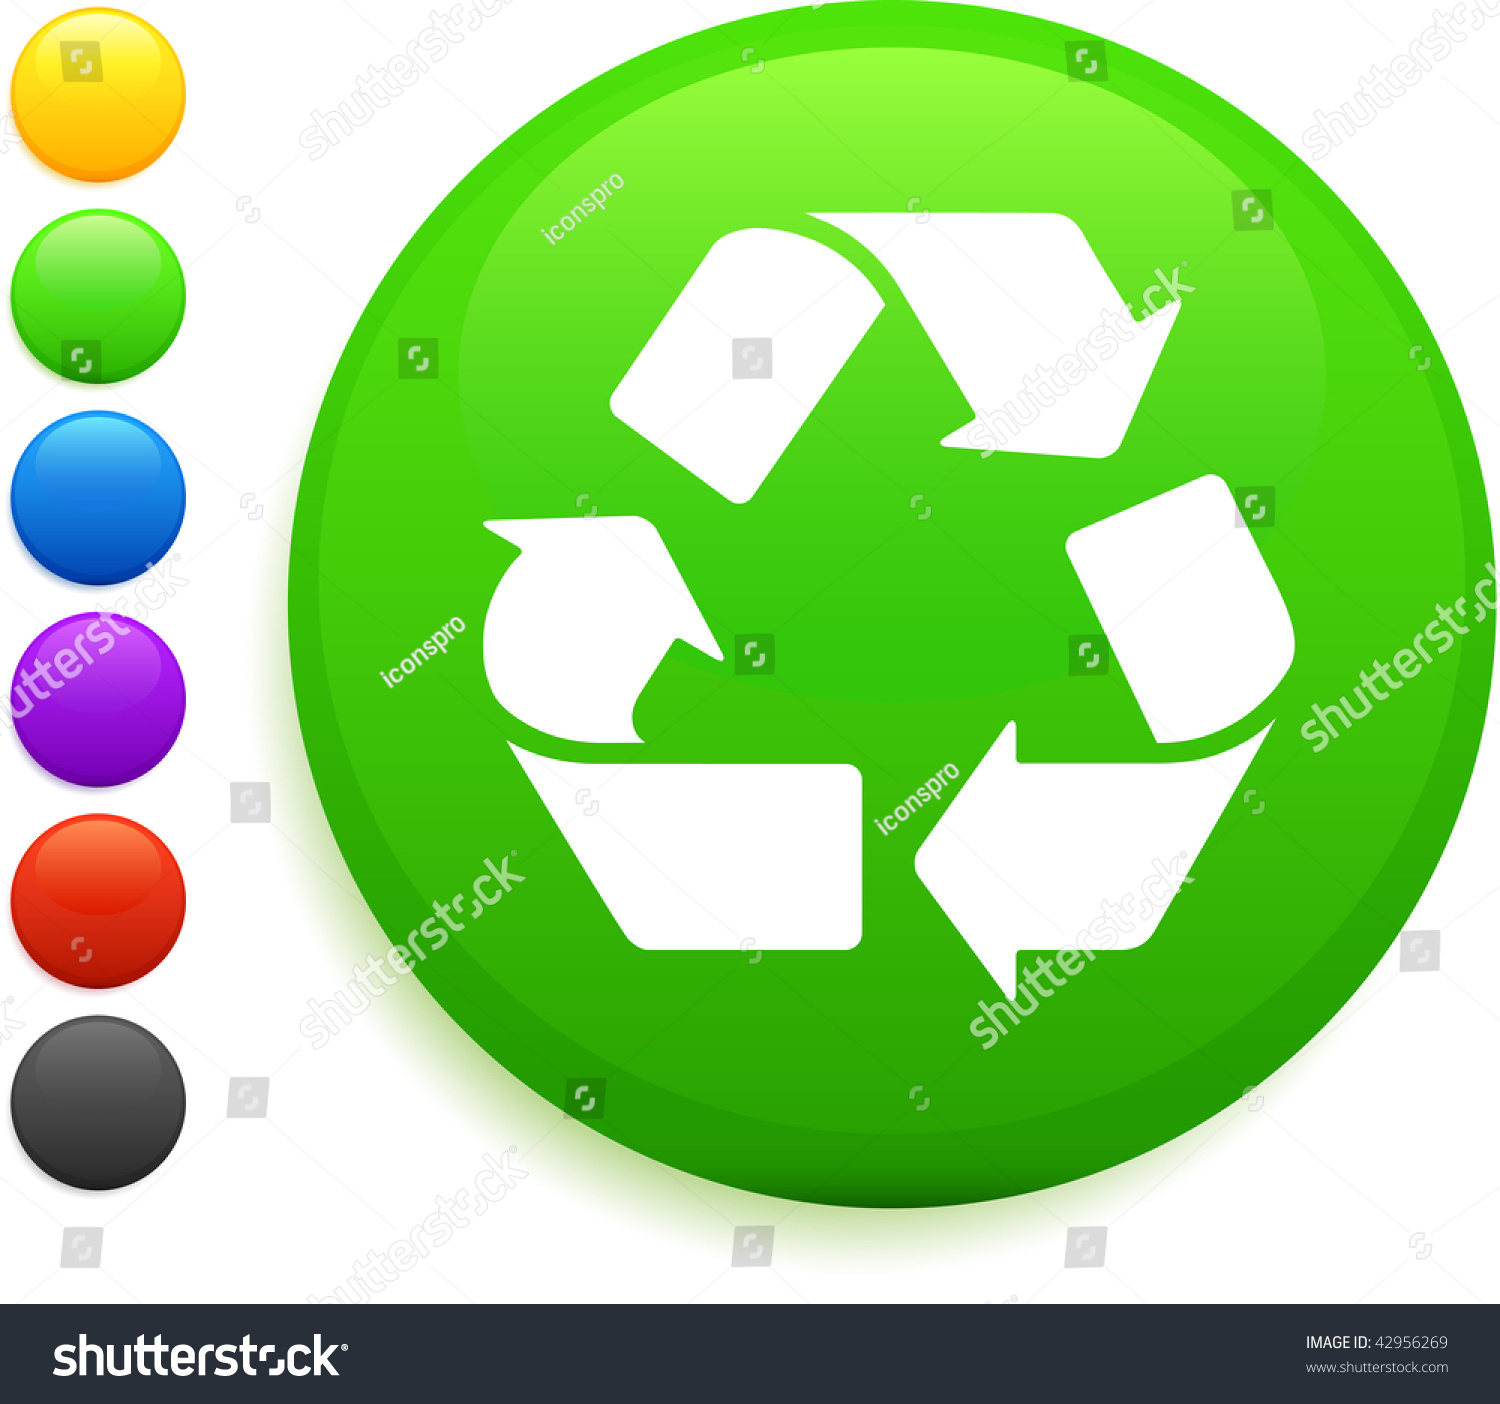 Recycle icon on round internet button stock vector 42956269 recycle icon on round internet button stock vector 42956269 shutterstock biocorpaavc